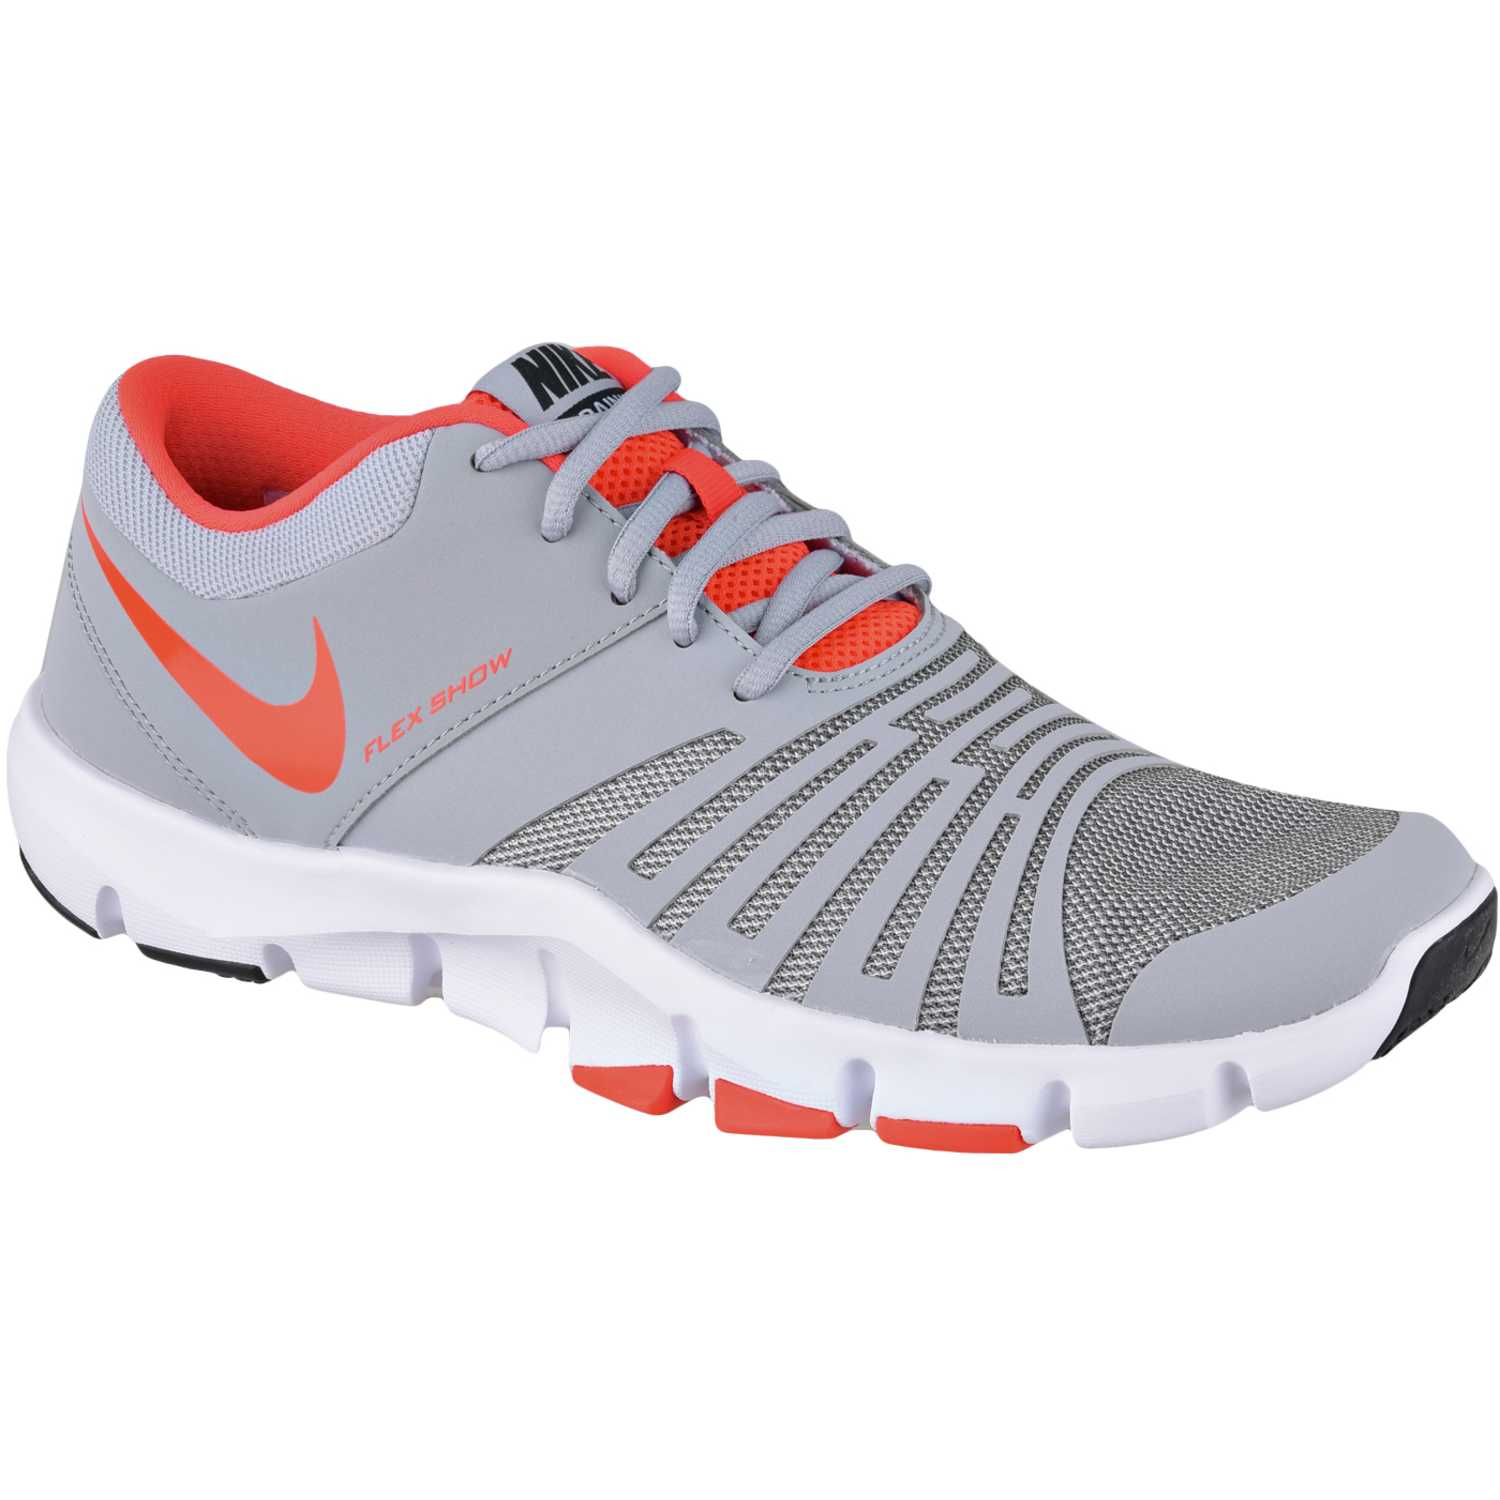 promo code 9ab47 a94d0 ... where to buy zapatilla de hombre nike gris rojo flex show tr 5 msl  82d43 9be80